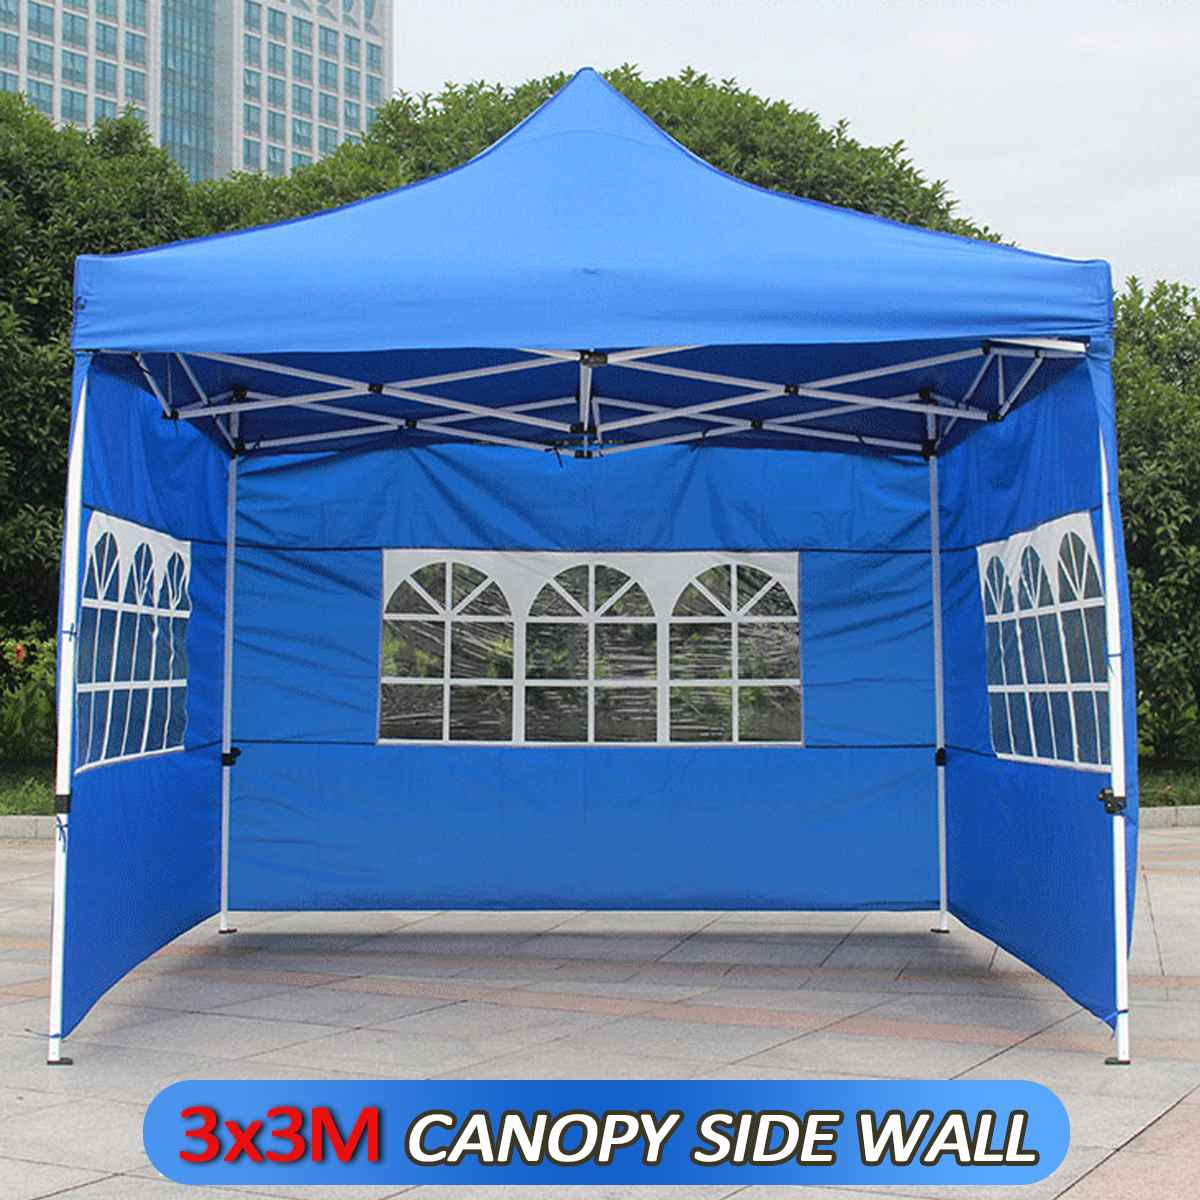 Oxford Cloth Party Tent With Sides Waterproof Garden Patio Outdoor Canopy 3x3m Sun Wall Sunshade Shelter